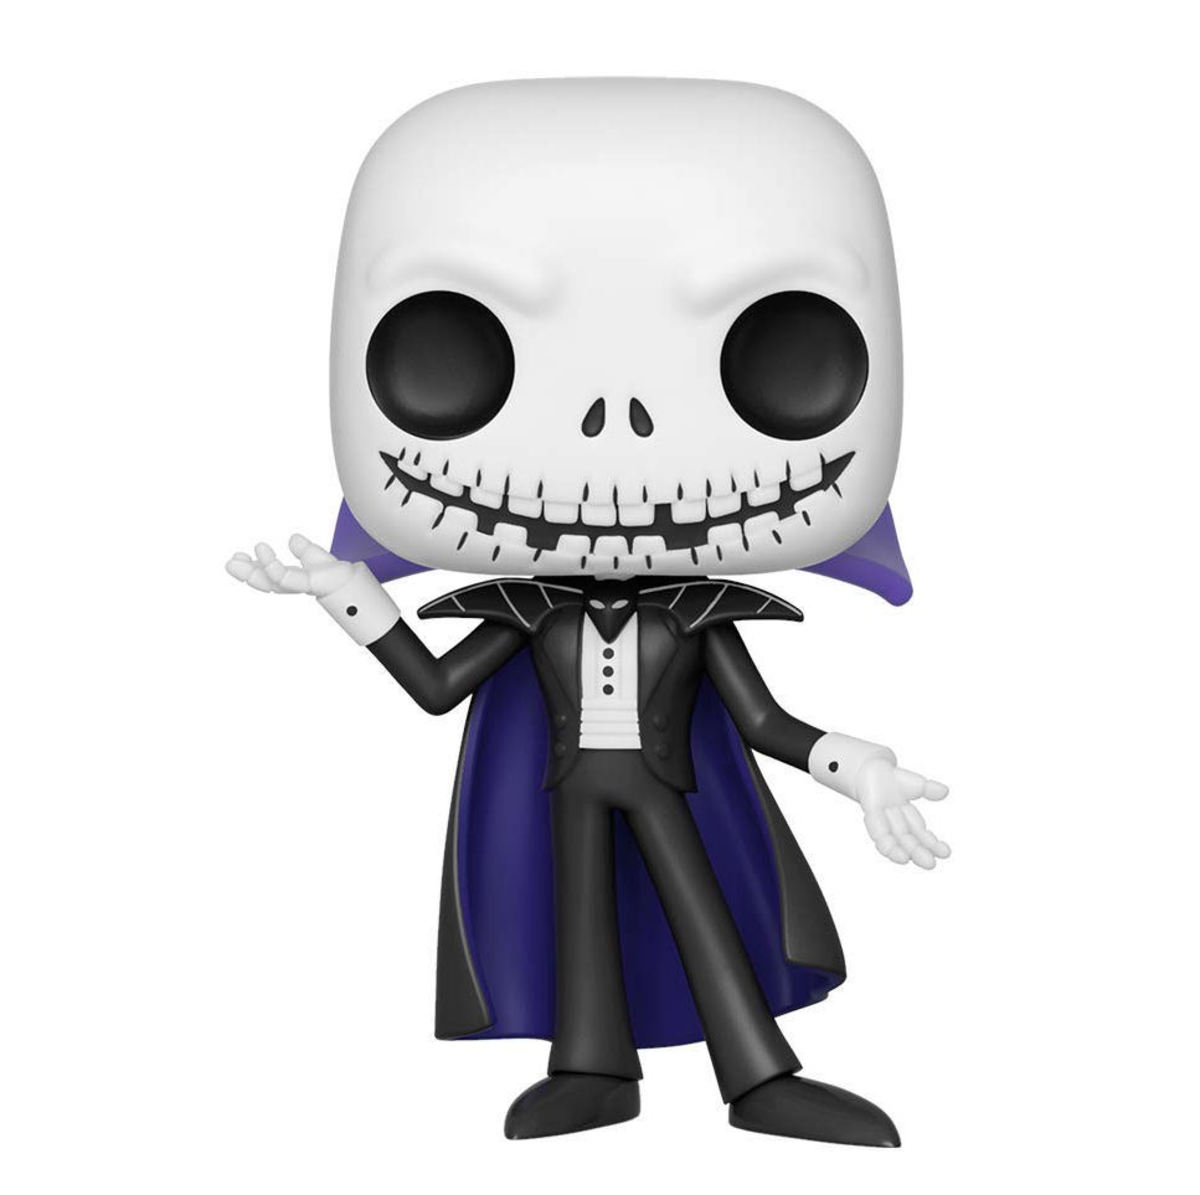 figurka Nightmare before Christmas - POP! - Vampire Jack - FK42672